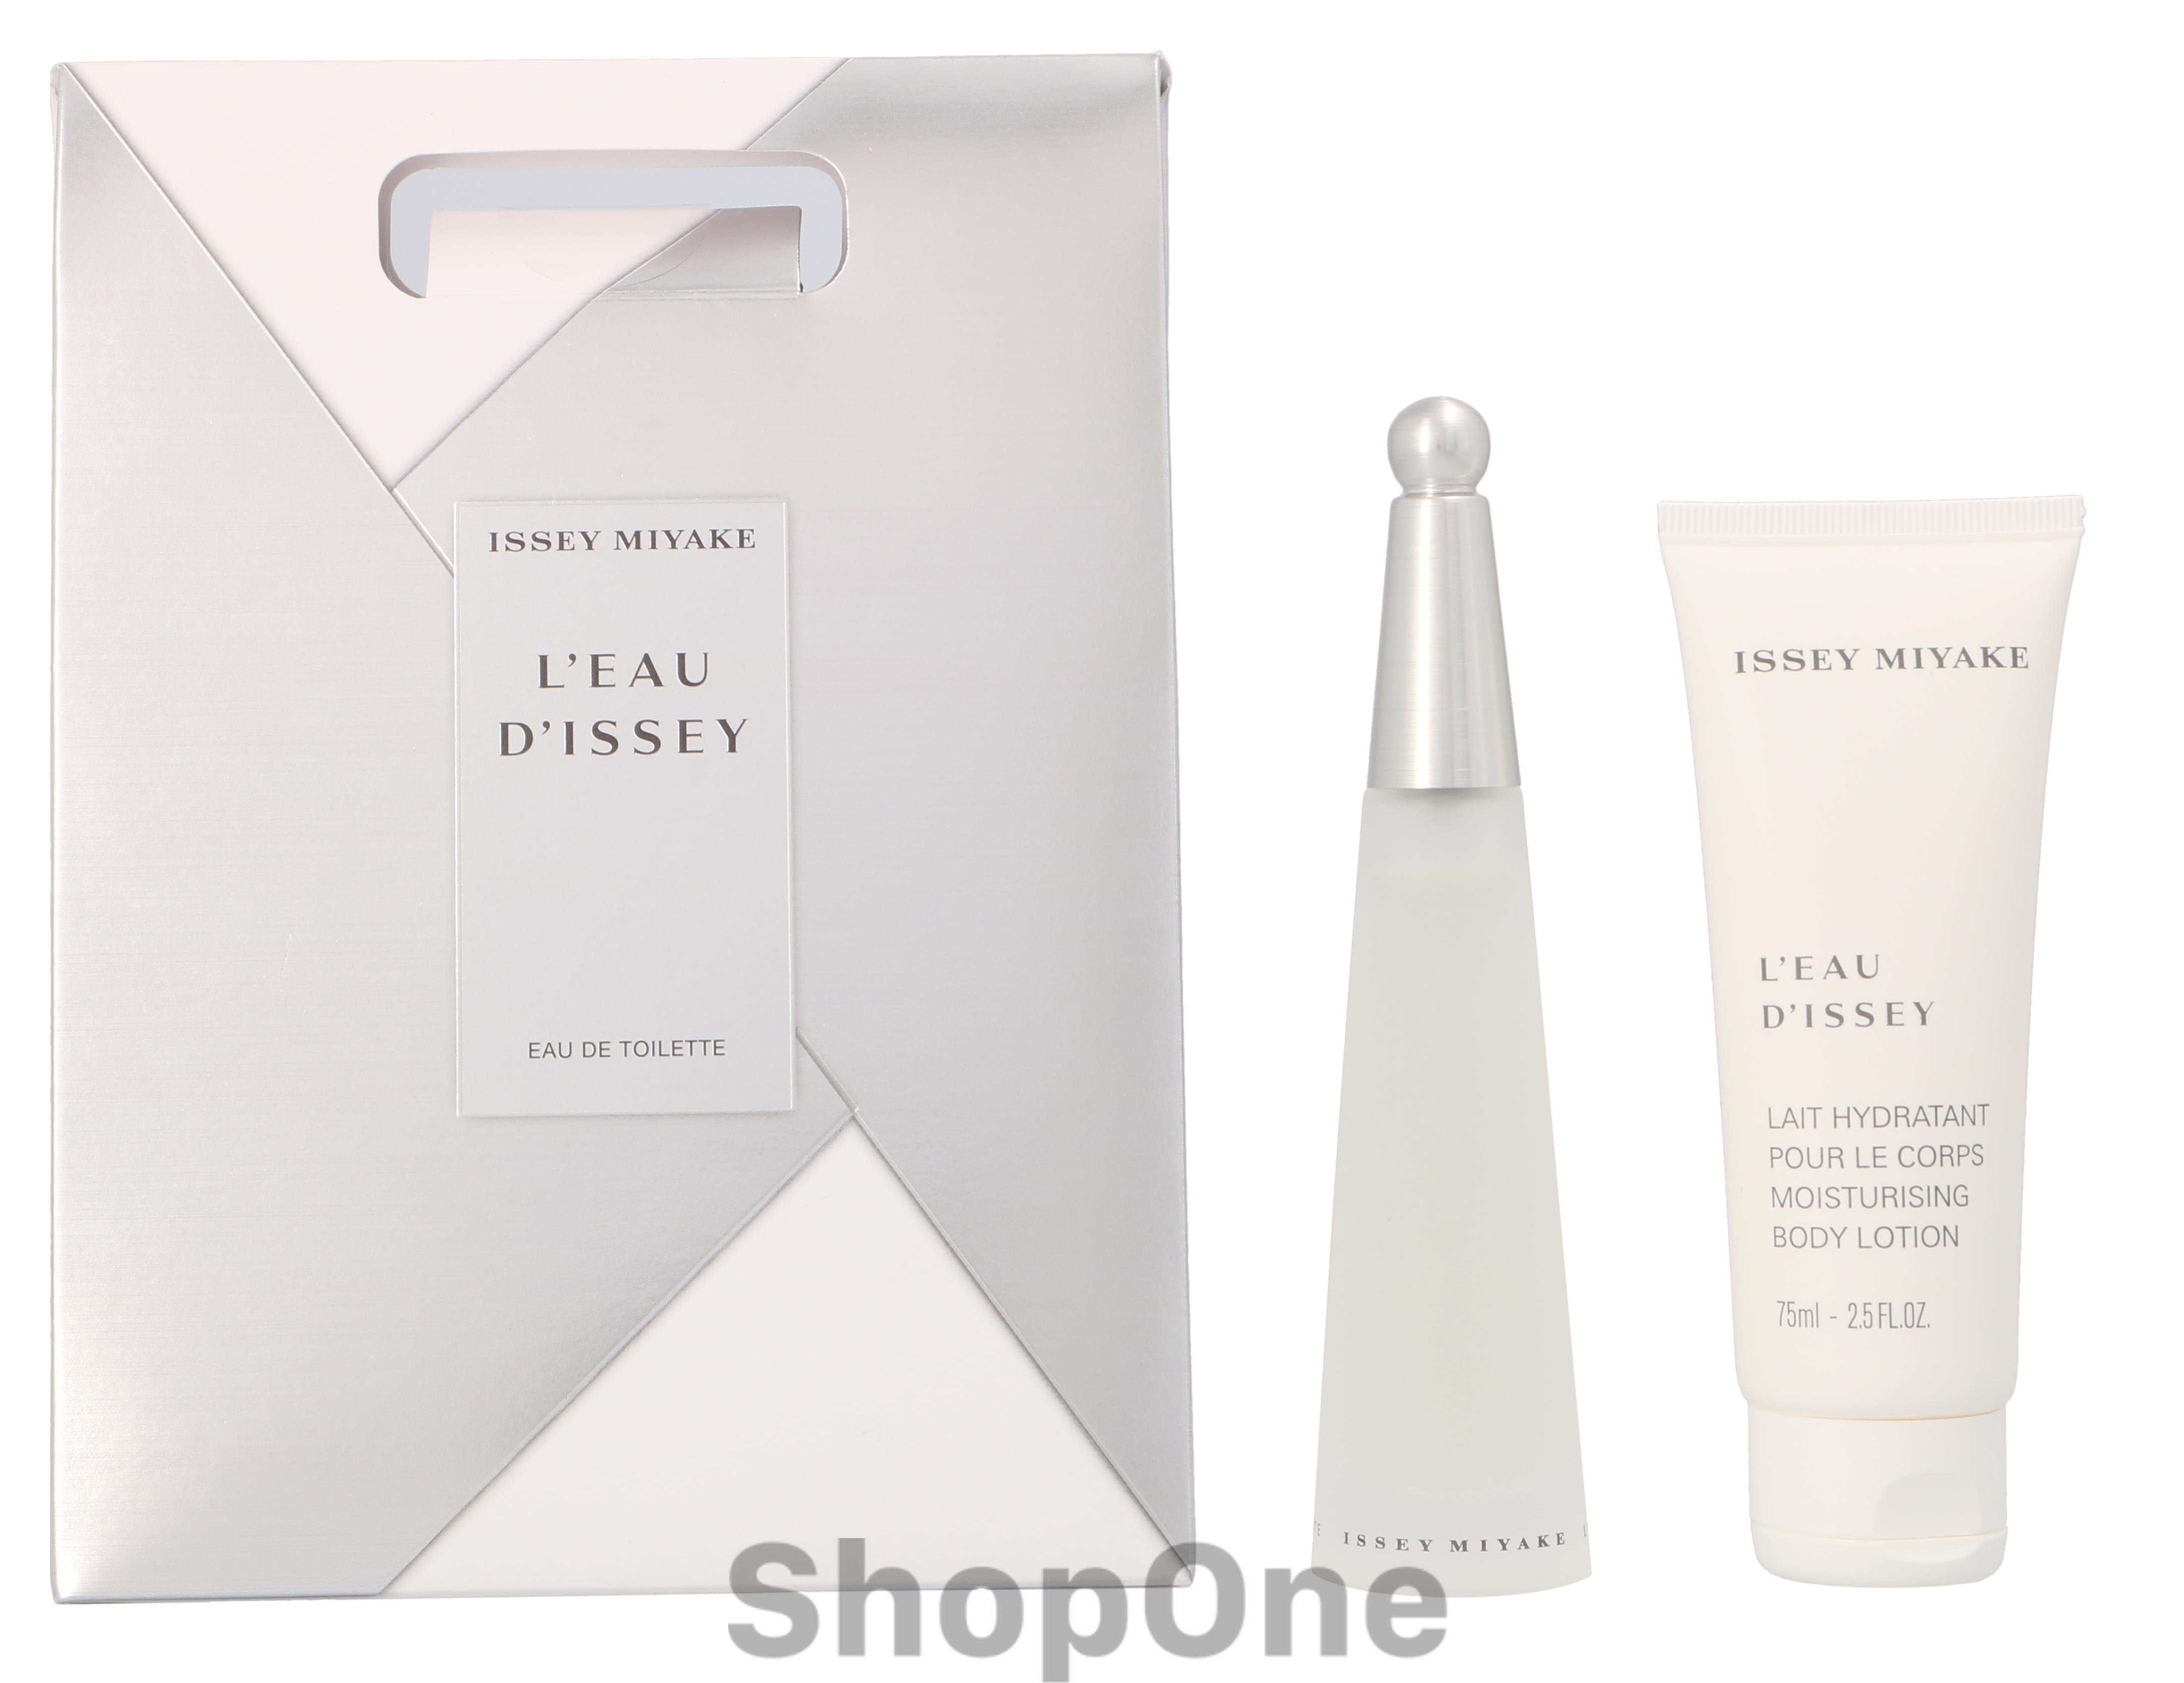 LEau DIssey Pour Femme Giftset 100 ml fra Issey Miyake - Cadeausets Issey Miyake LEau DIssey Pour Femme Giftset 100 ml. Fra Issey Miyake.